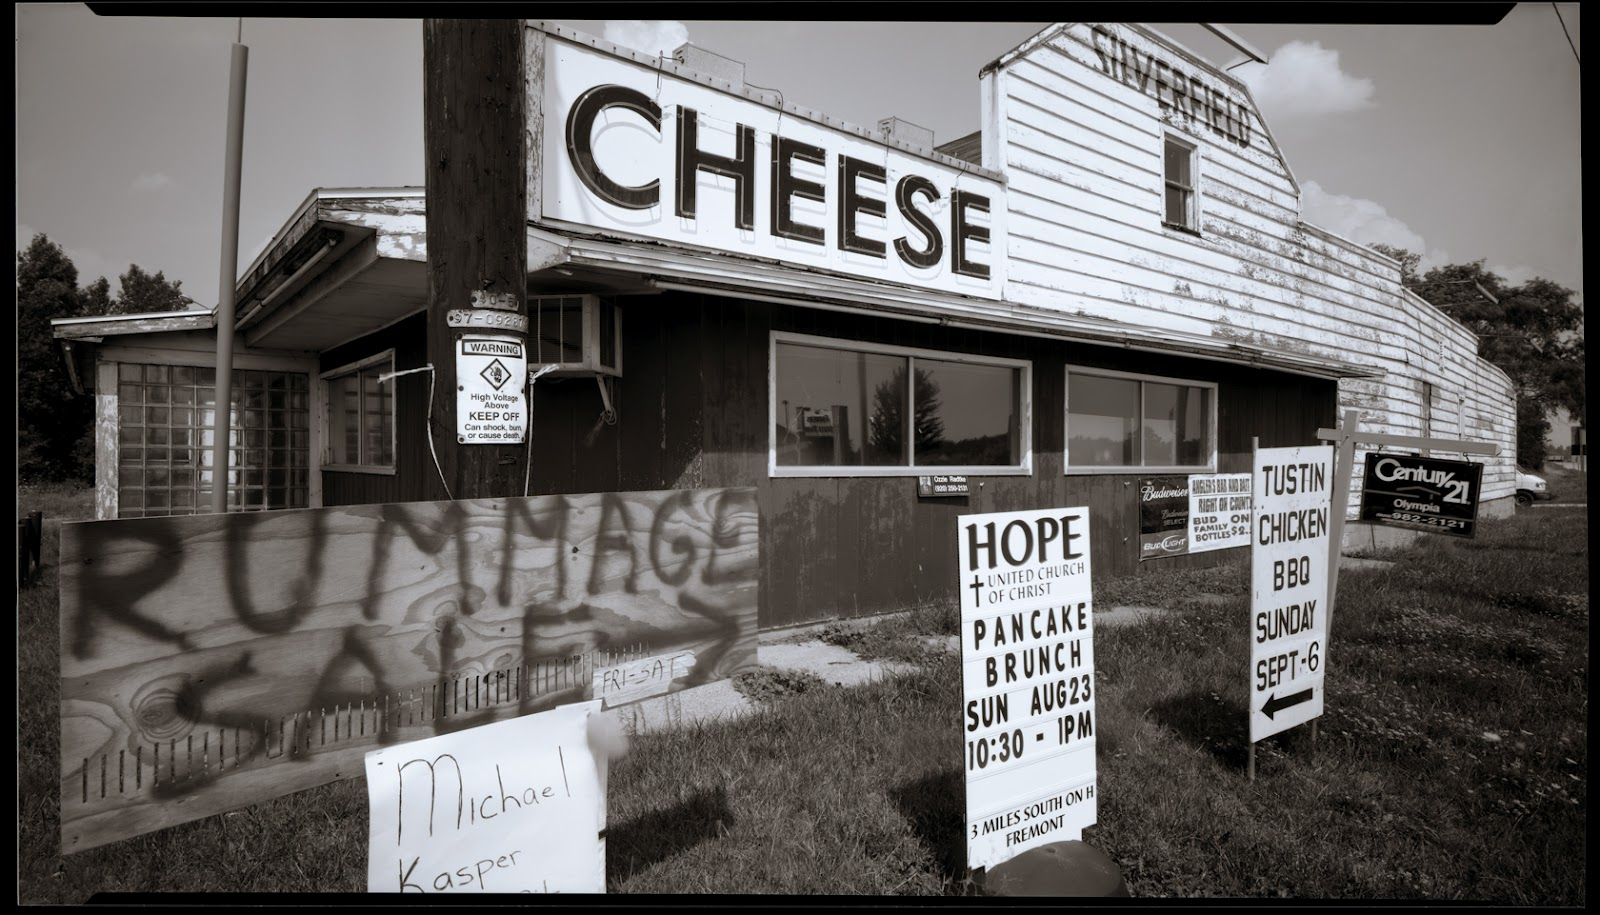 Silverfield Cheese Factory, Fremont, WI, 2009